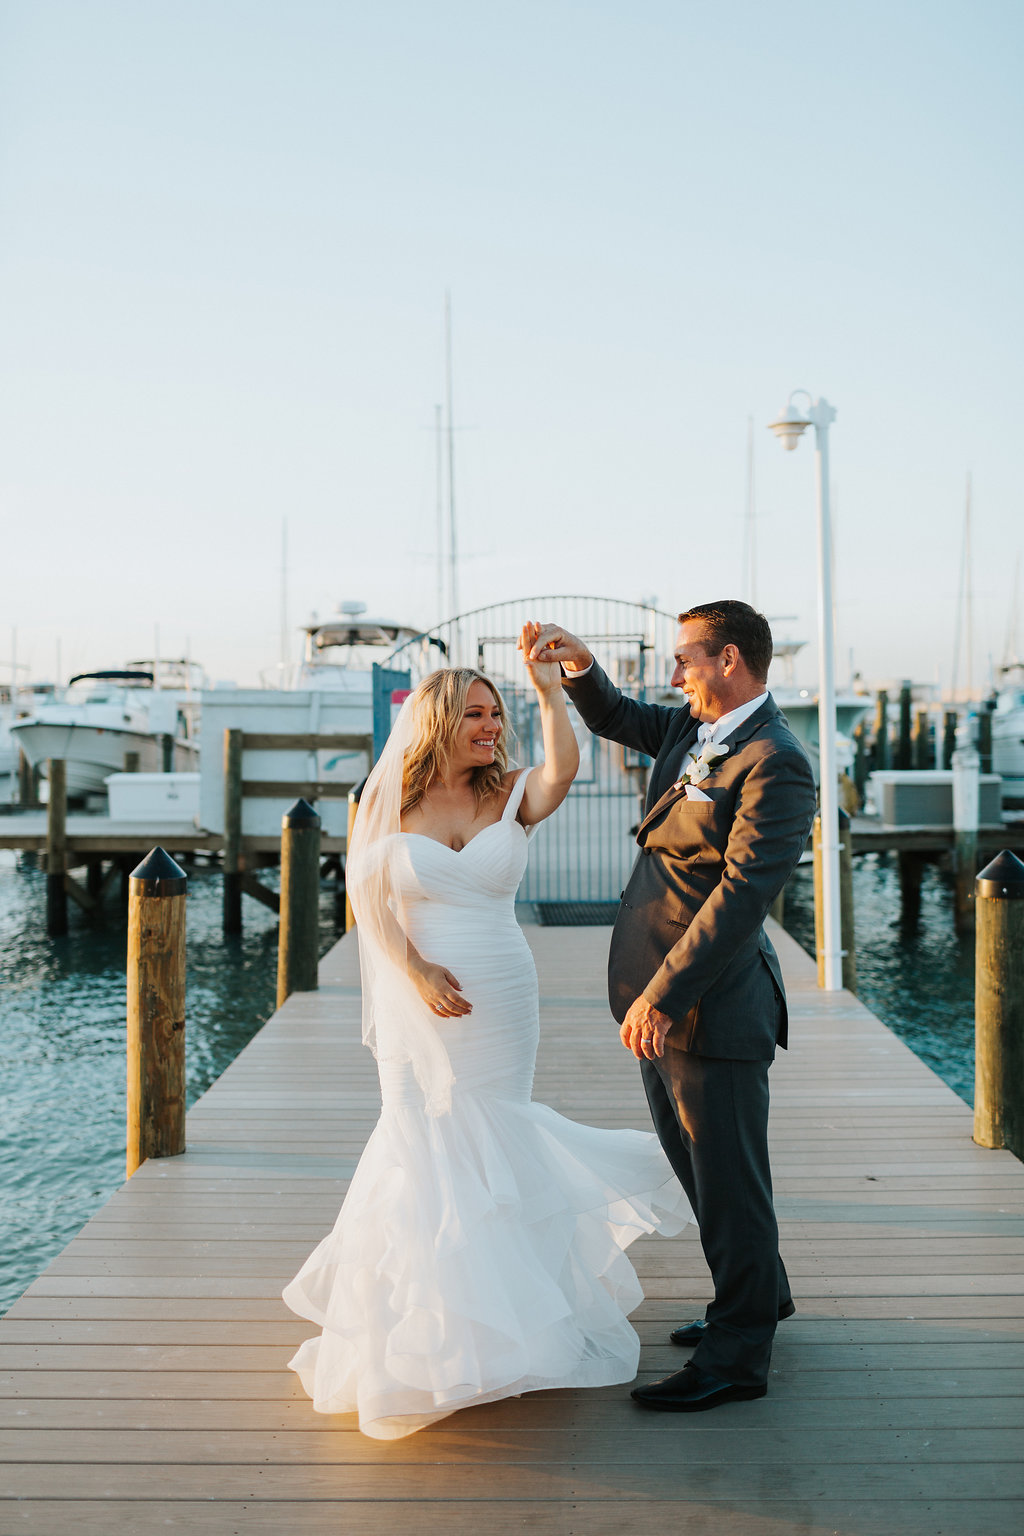 Romantic, Waterfront Bride and Groom Wedding Portrait, Bride in Mikaella Off the Shoulder, Sweetheart Wedding Dress and Tulle Veil, Groom in Grey Suit and White Cala Lillie Boutonniere   St. Pete Beach Wedding Venue Isla Del Sol Yacht and Country Club